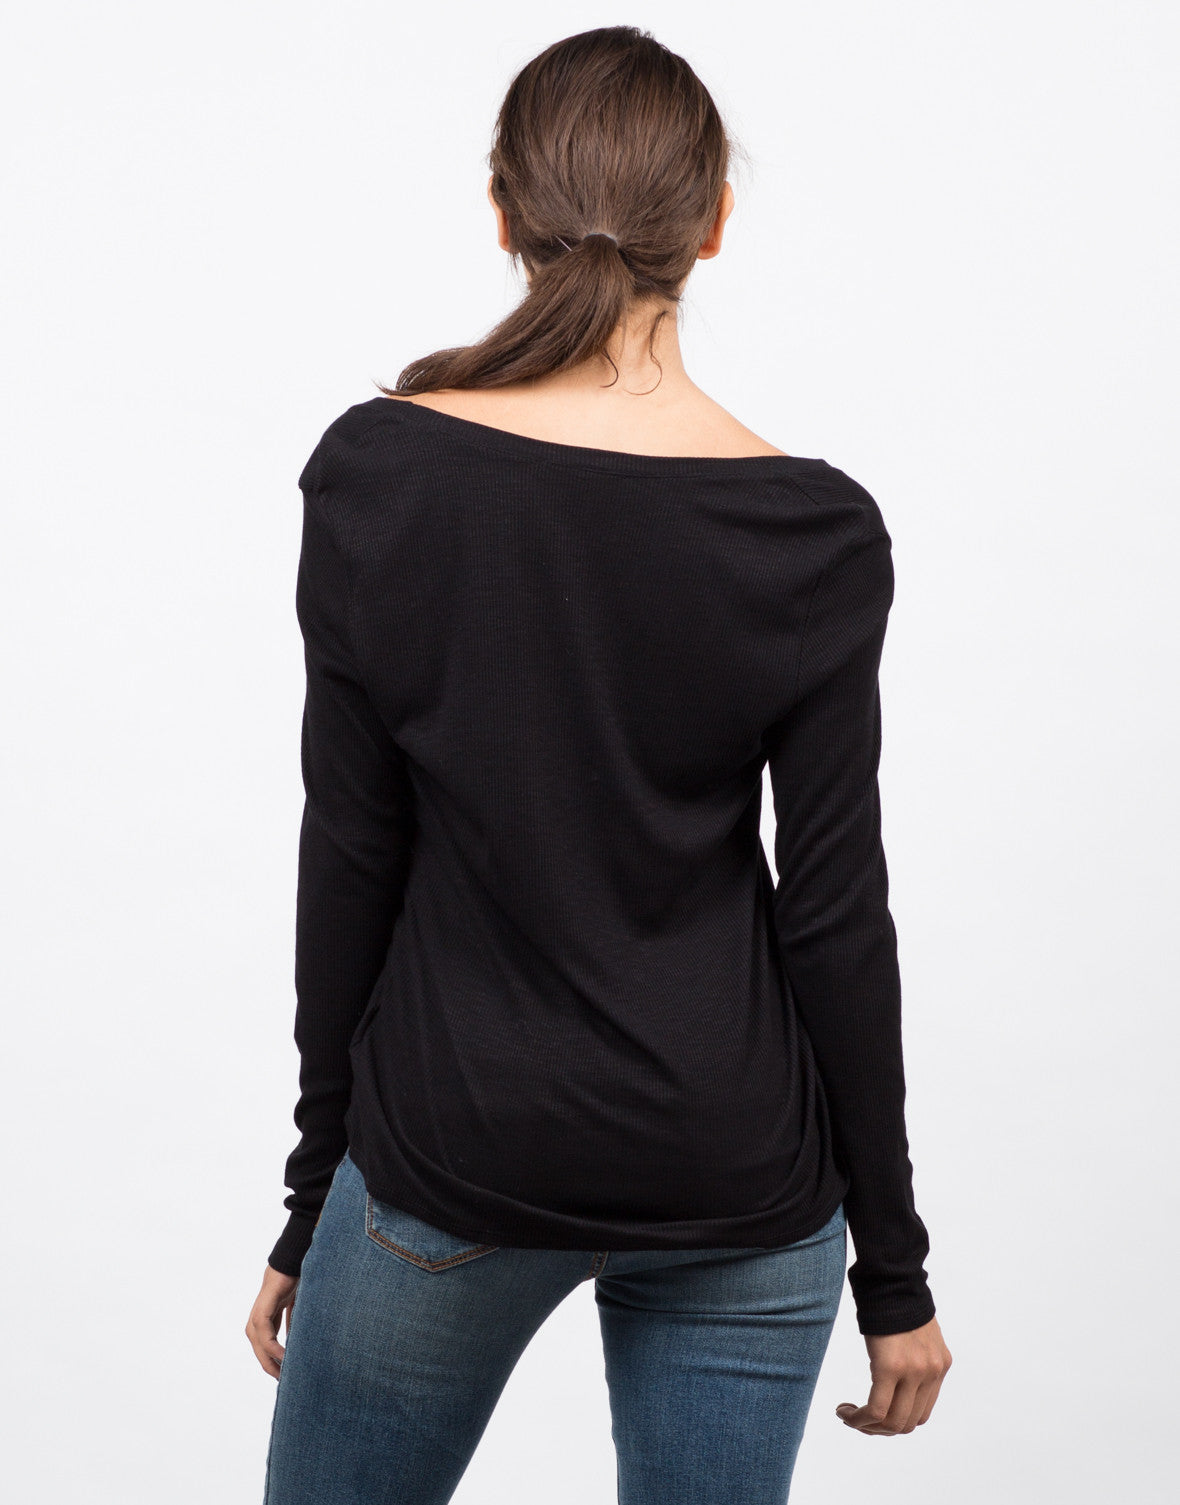 Back View of Plunging Long Sleeve Top